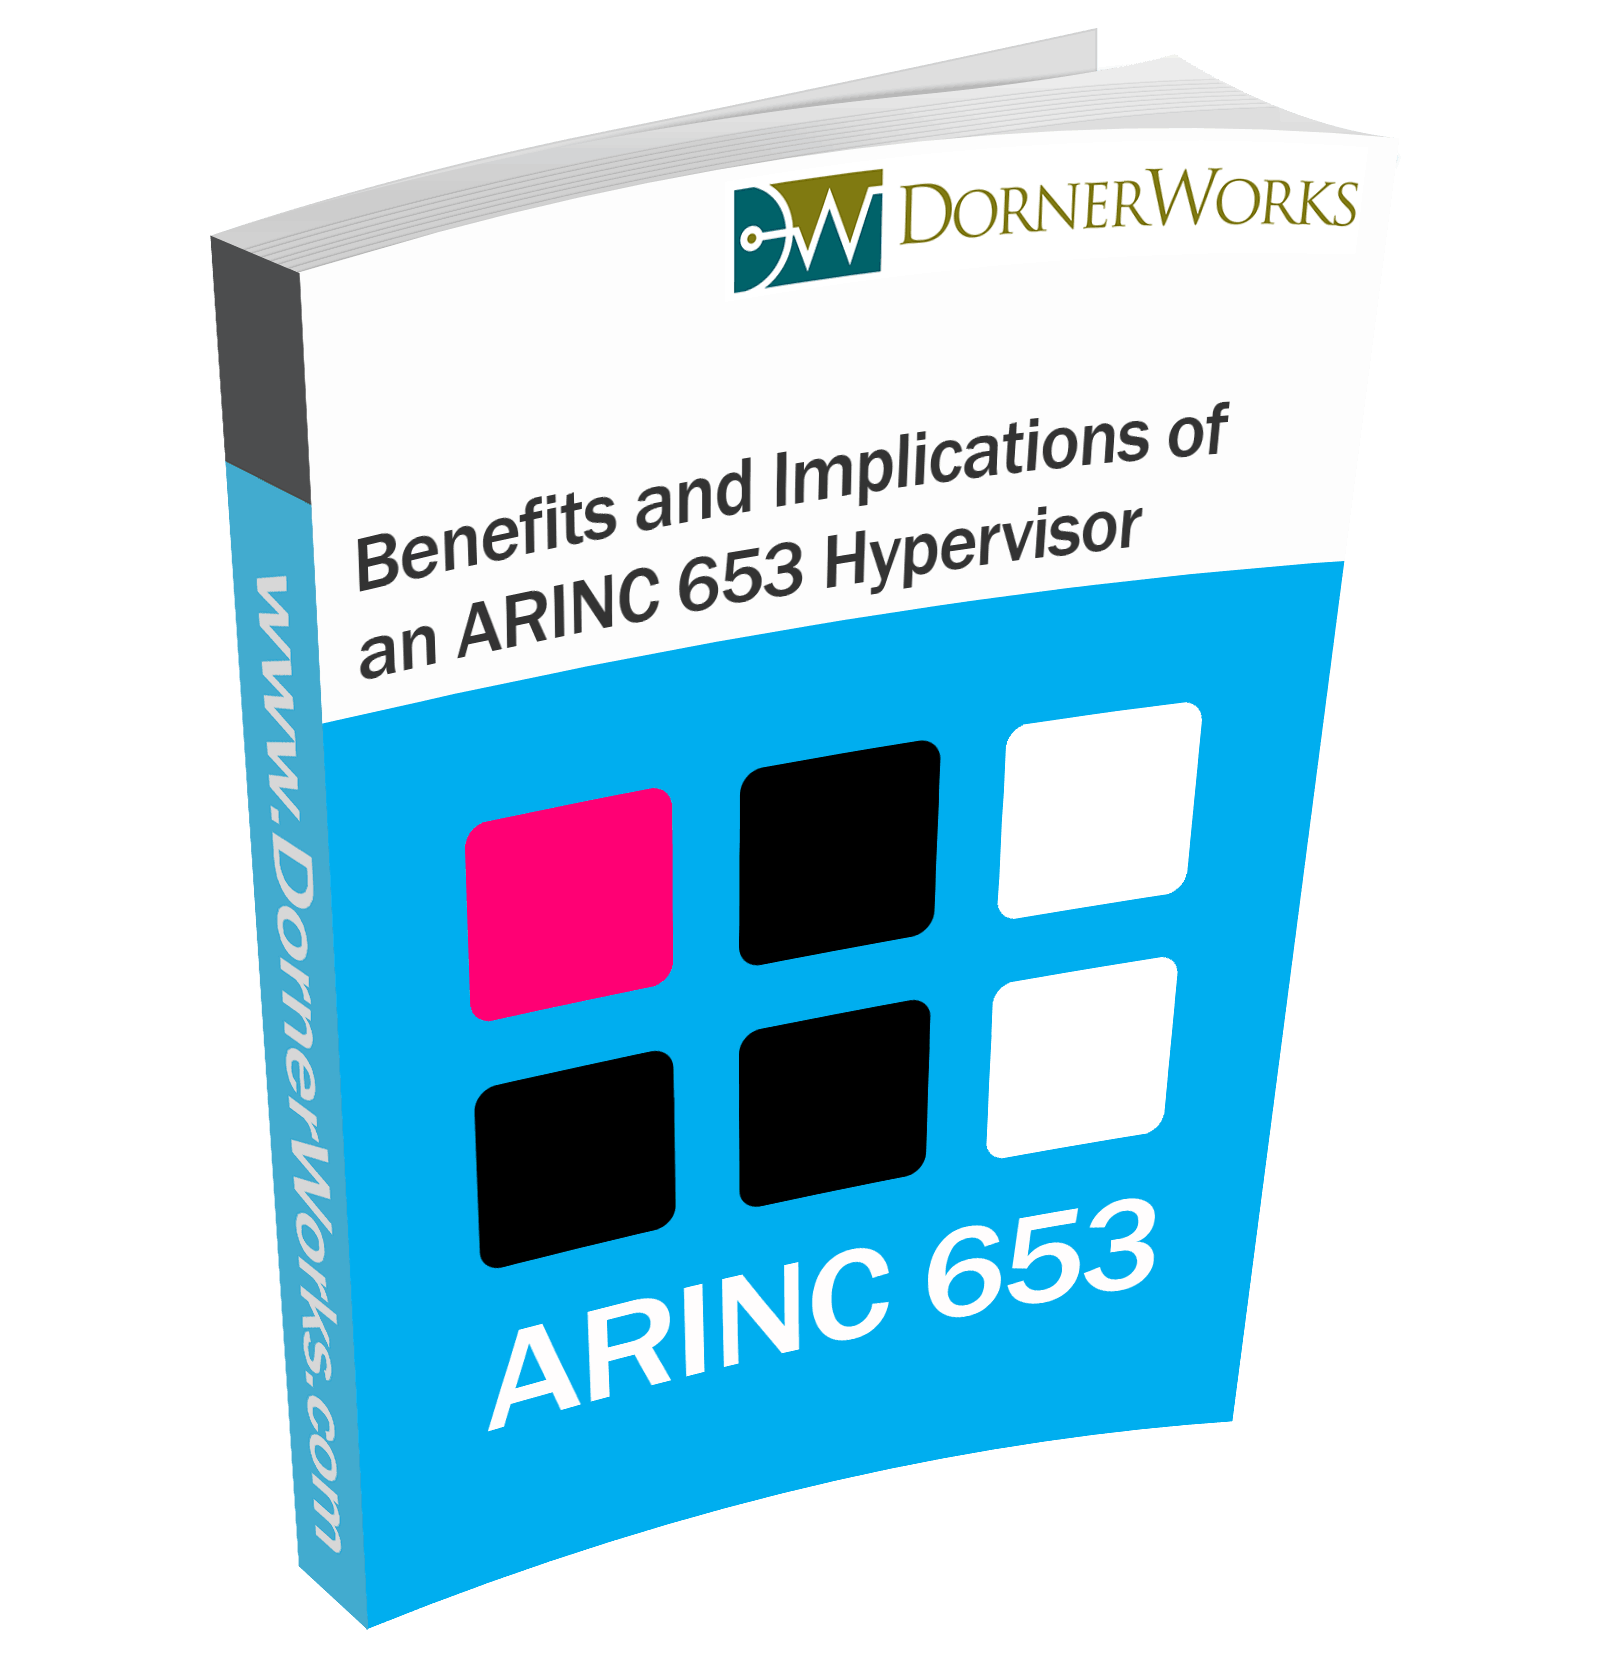 Benefits and Implications of an ARINC 653 Hypervisor